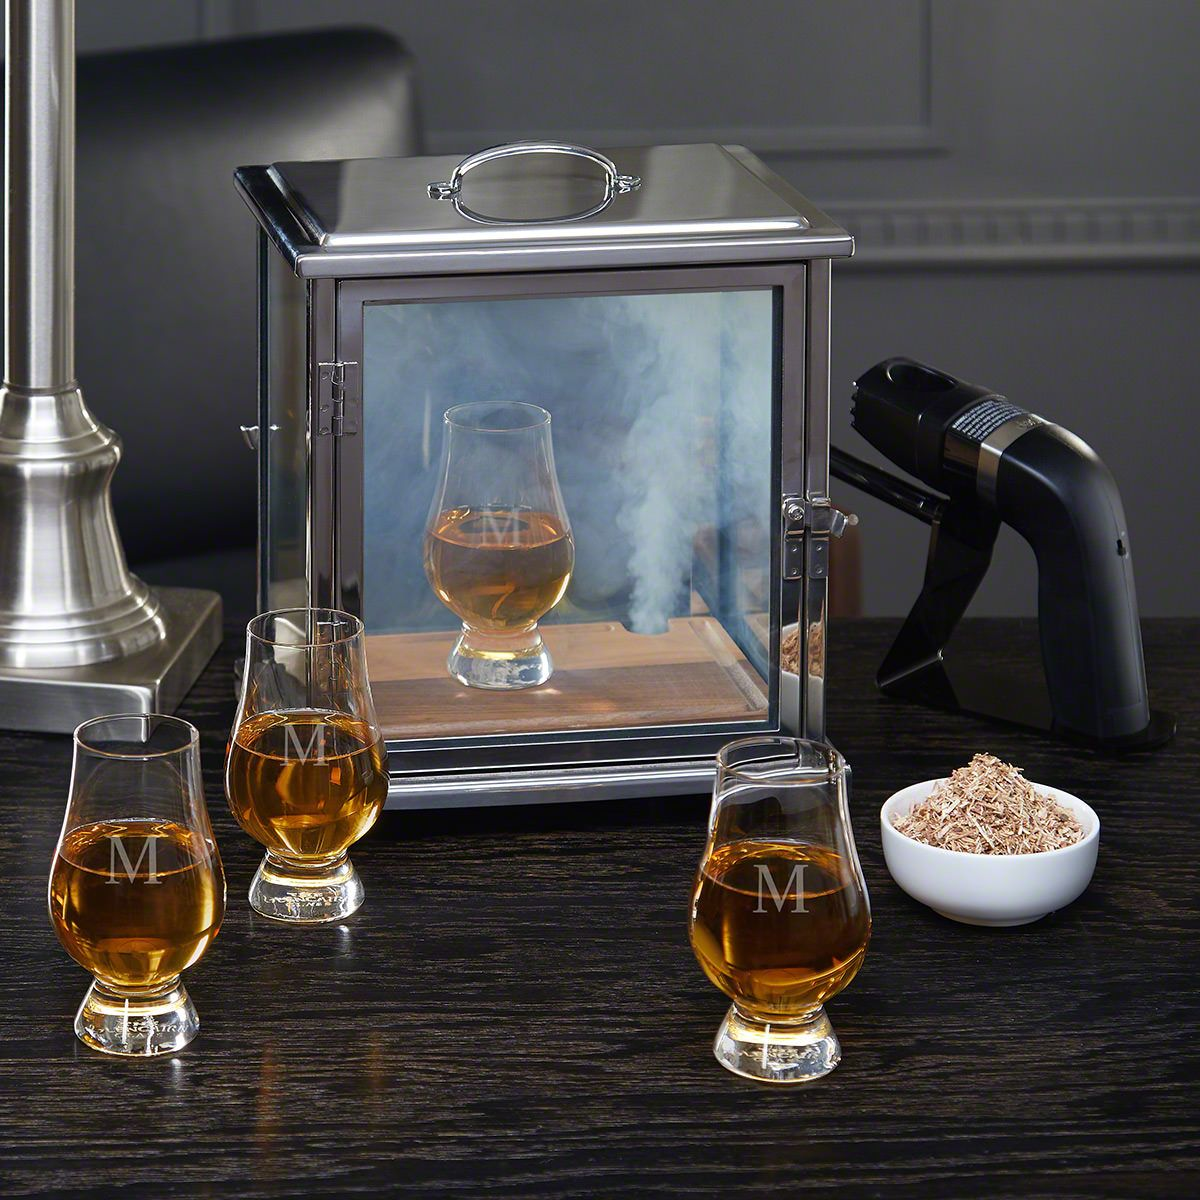 Advanced Smoke Box Kit with Engraved Glencairn Whiskey Glasses